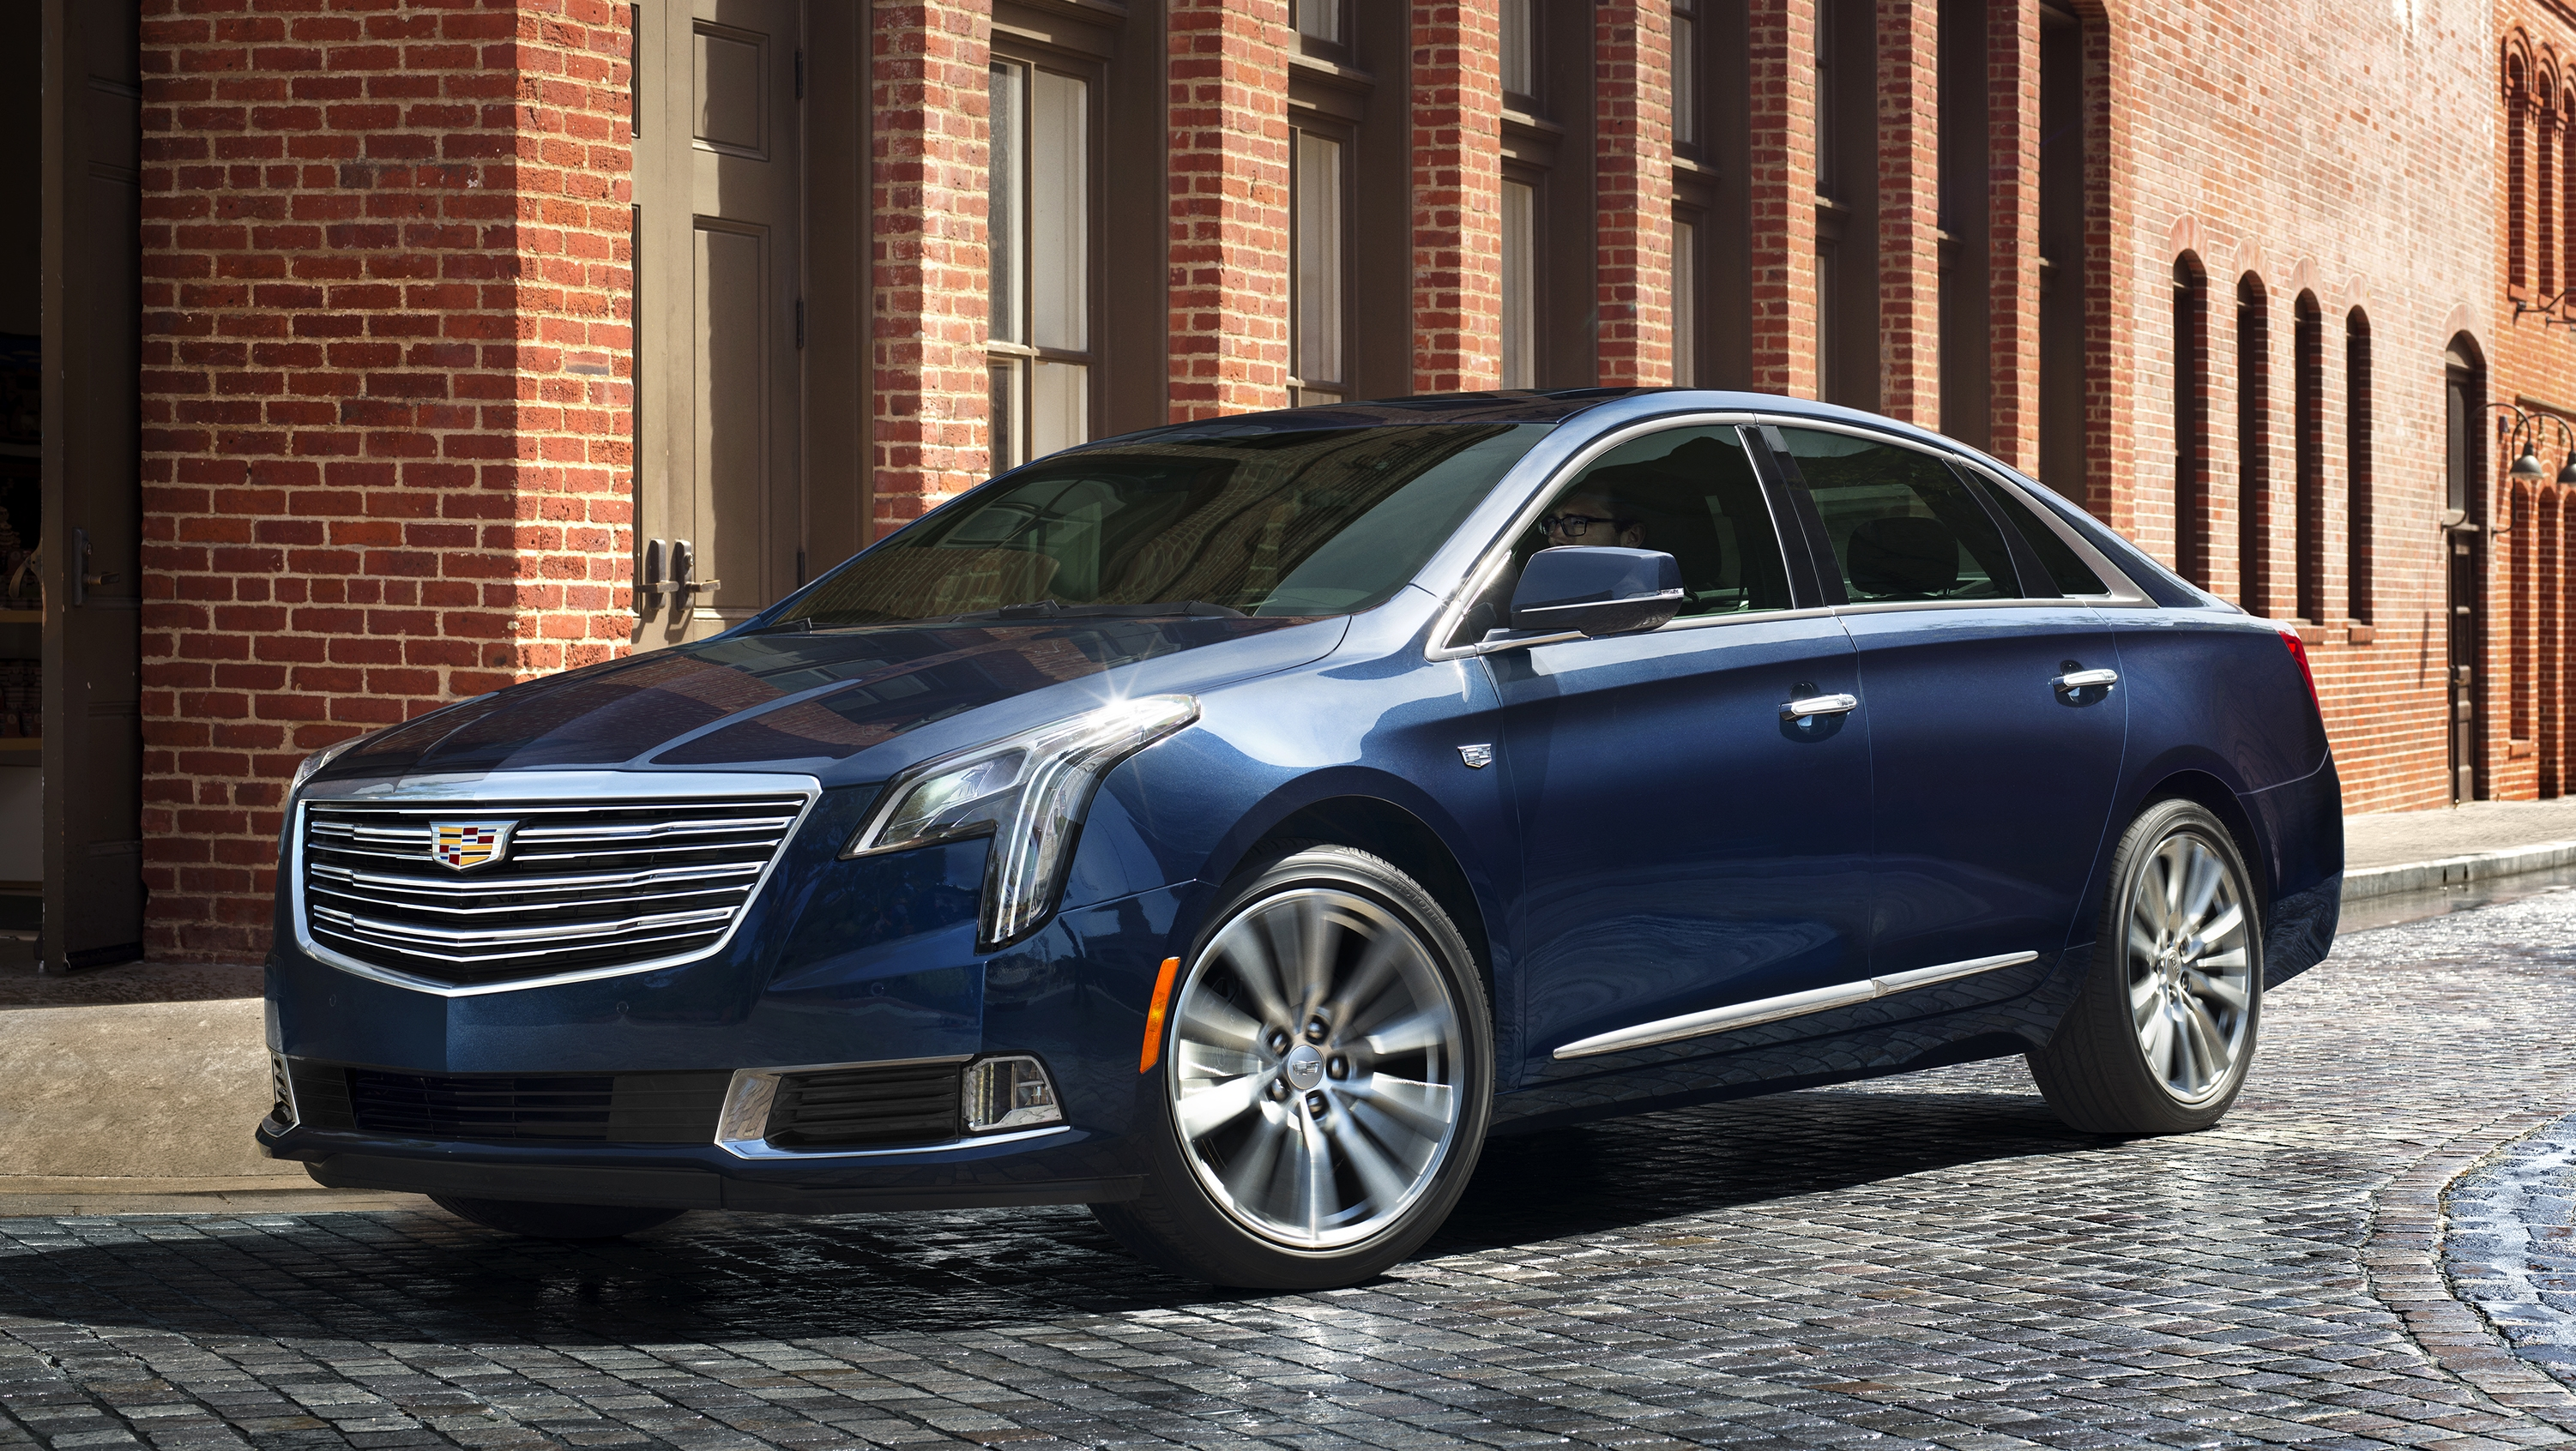 platinum sport show front drive cadillac starts in xts tester wp with and review wheel rings very a me all at v my buttons the reasonable